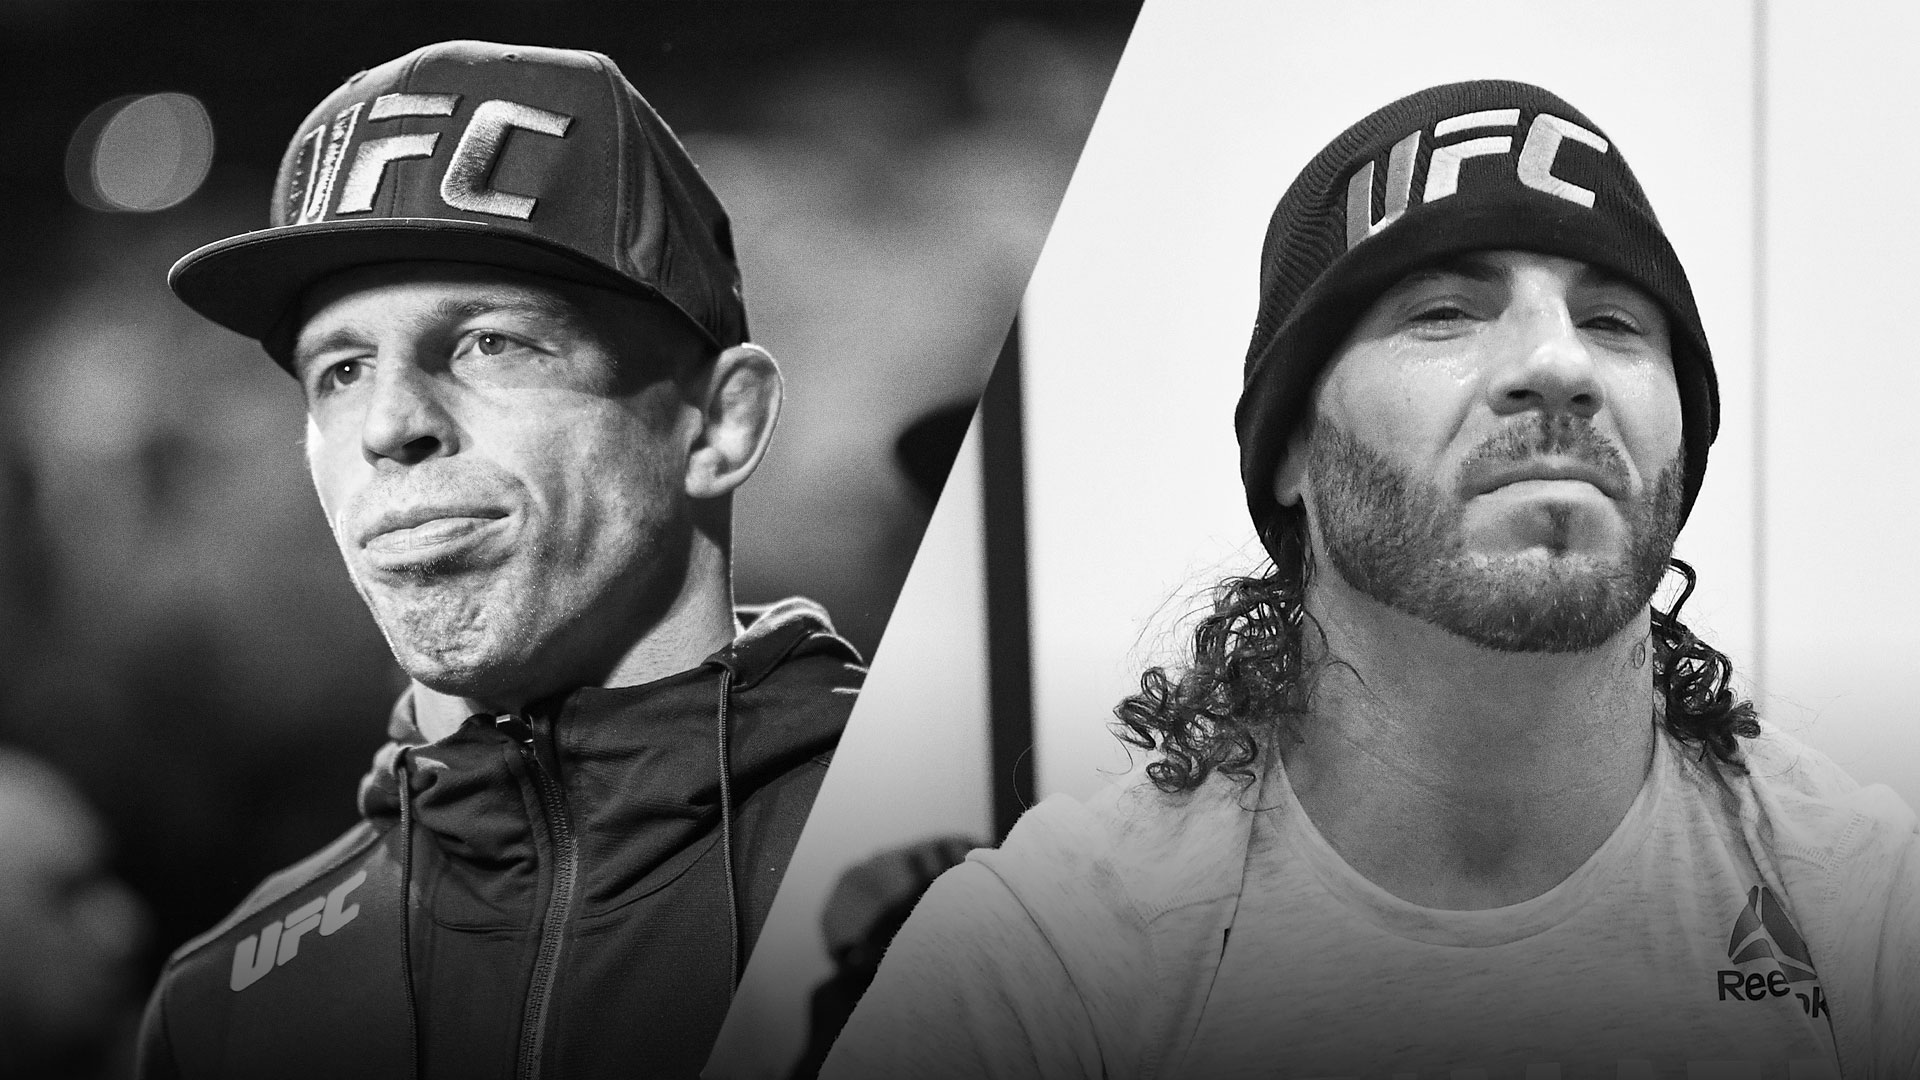 UFC Unfiltered Mark O. Madsen and Clay Guida